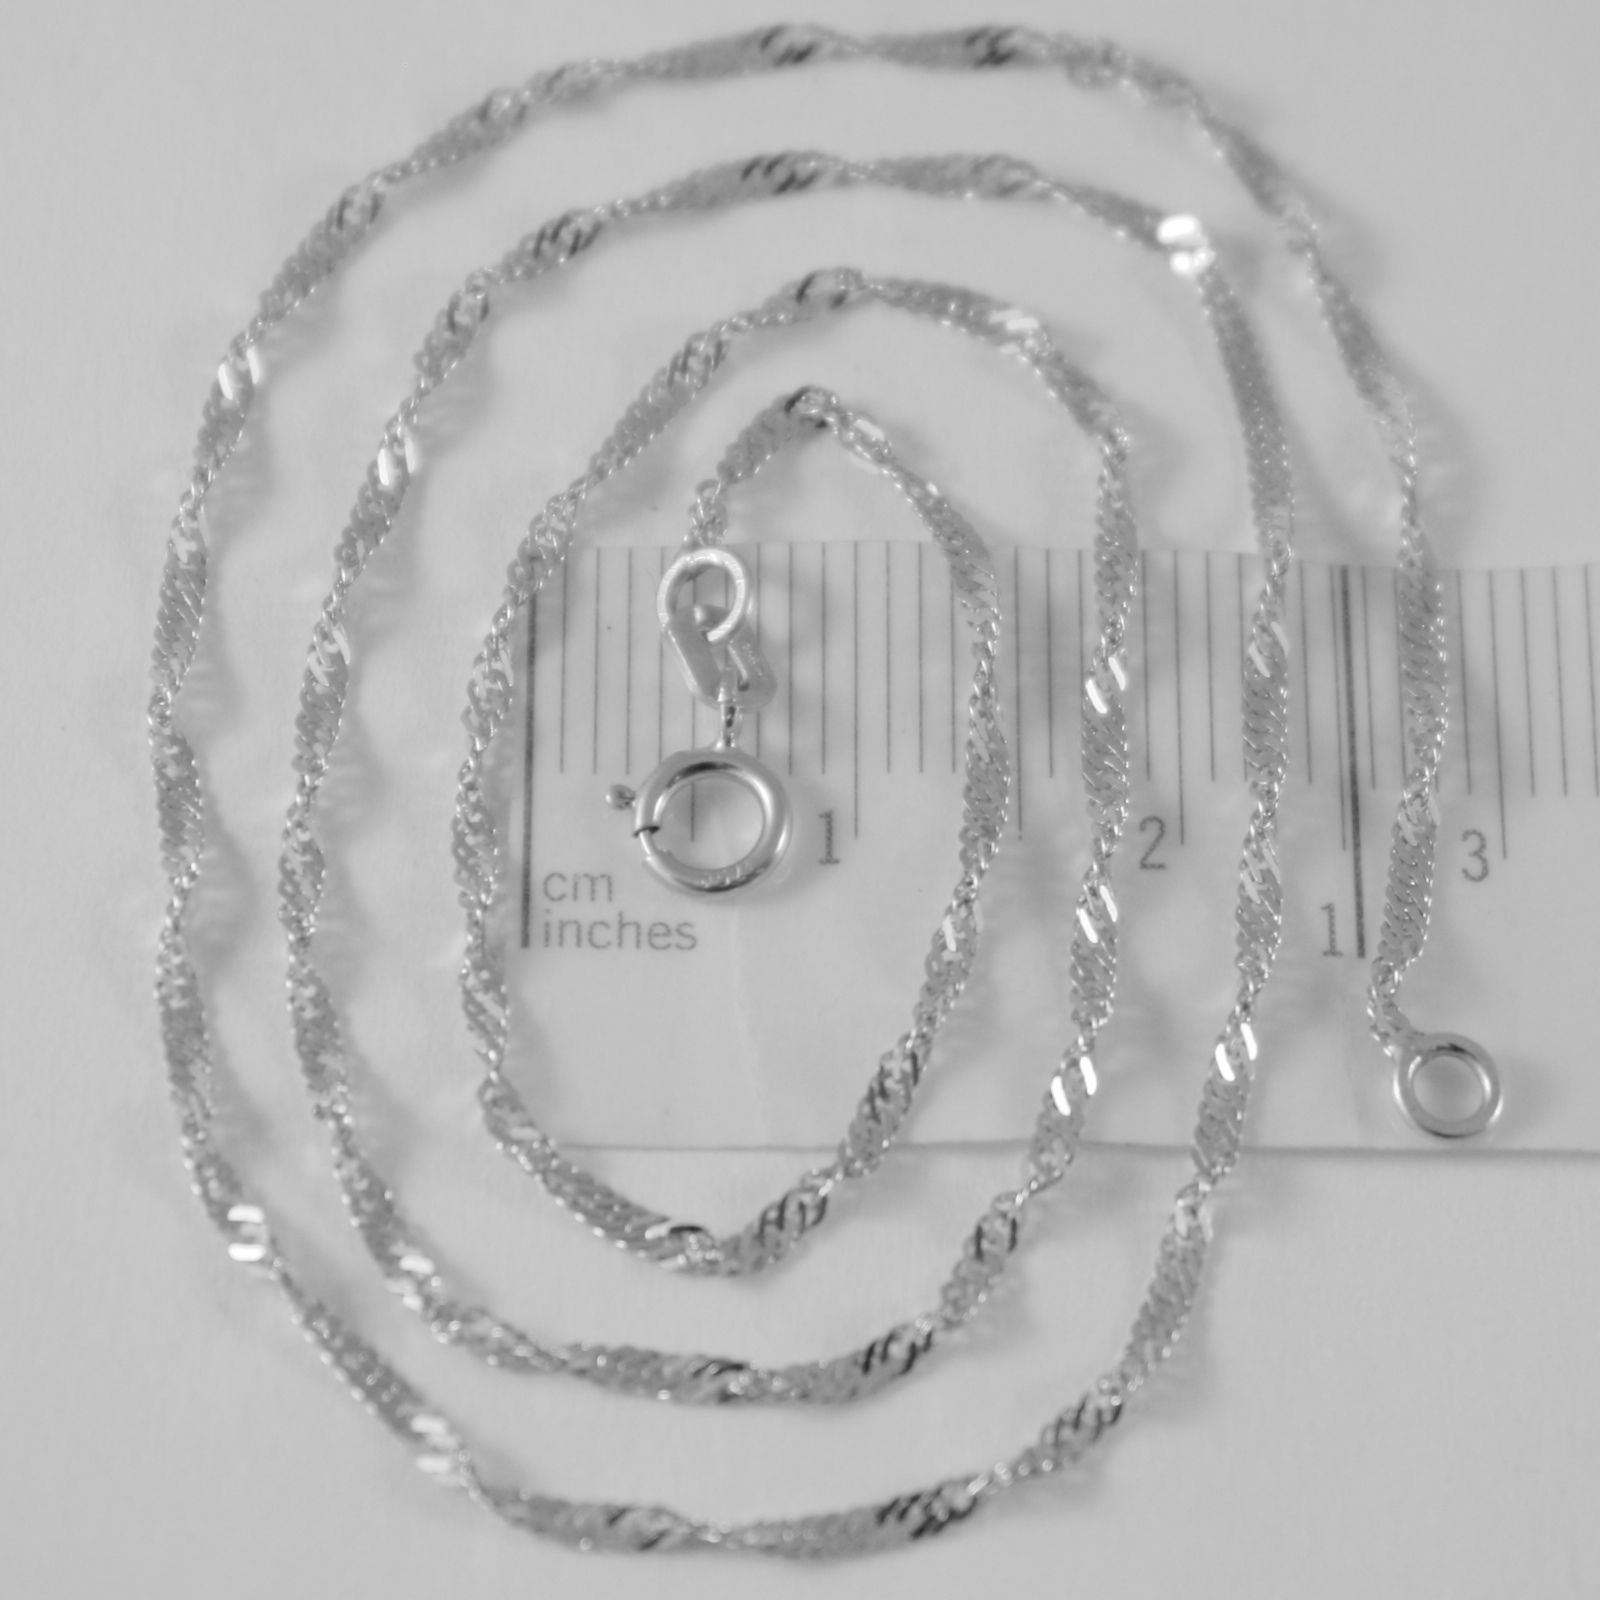 SOLID 18K WHITE GOLD SINGAPORE BRAID ROPE CHAIN 16 INCHES, 2 MM MADE IN ITALY